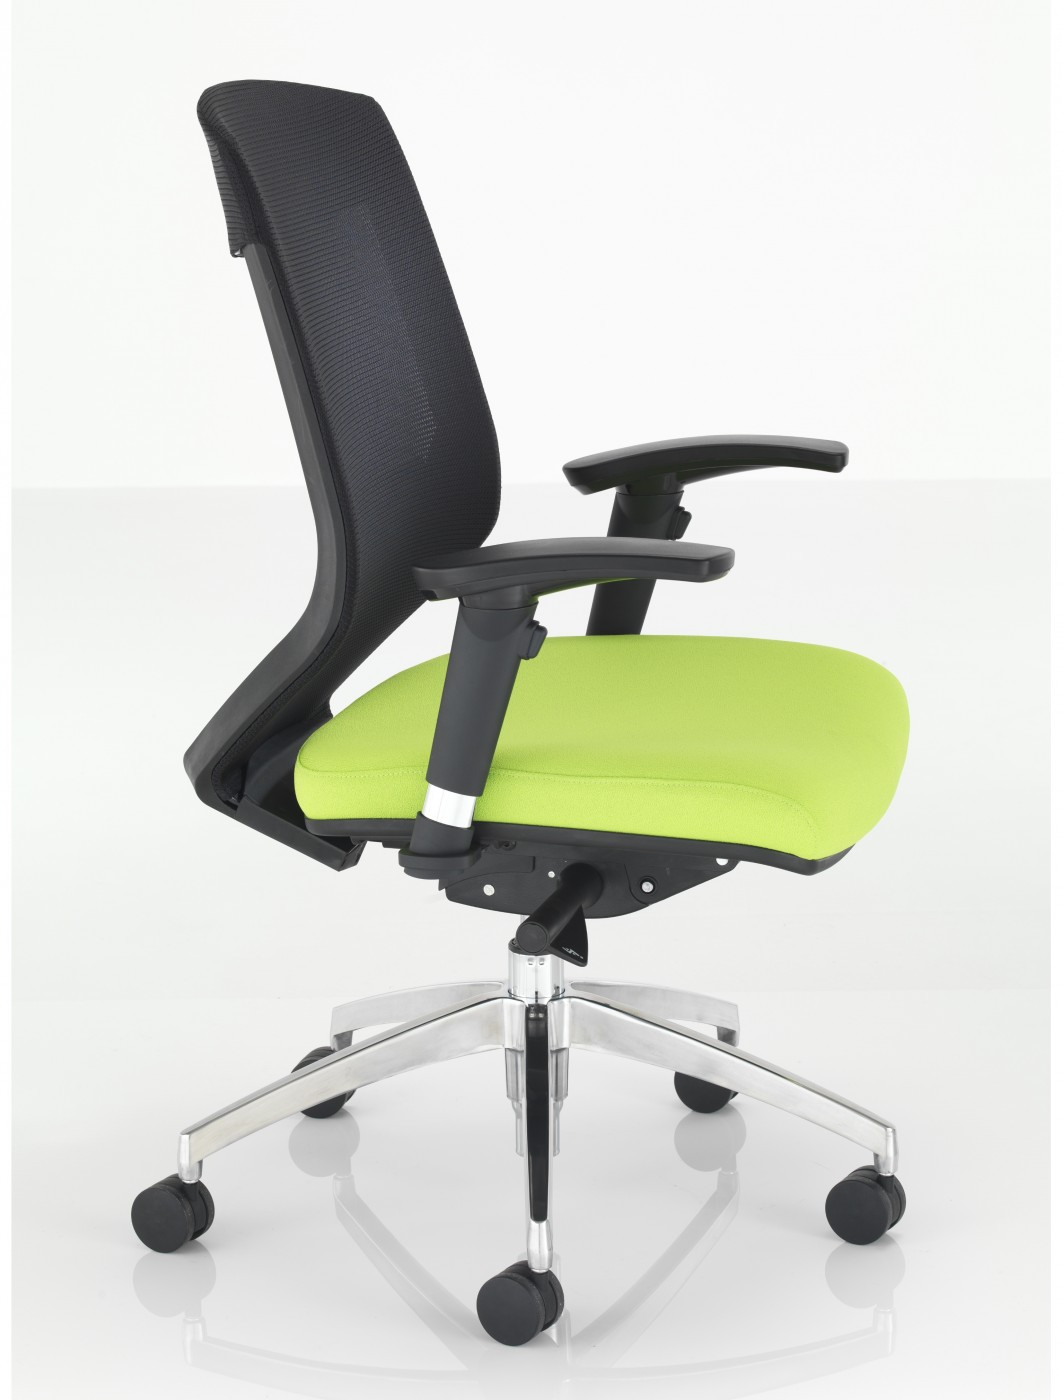 mesh zico enlarged chairs view office furniture chair seat